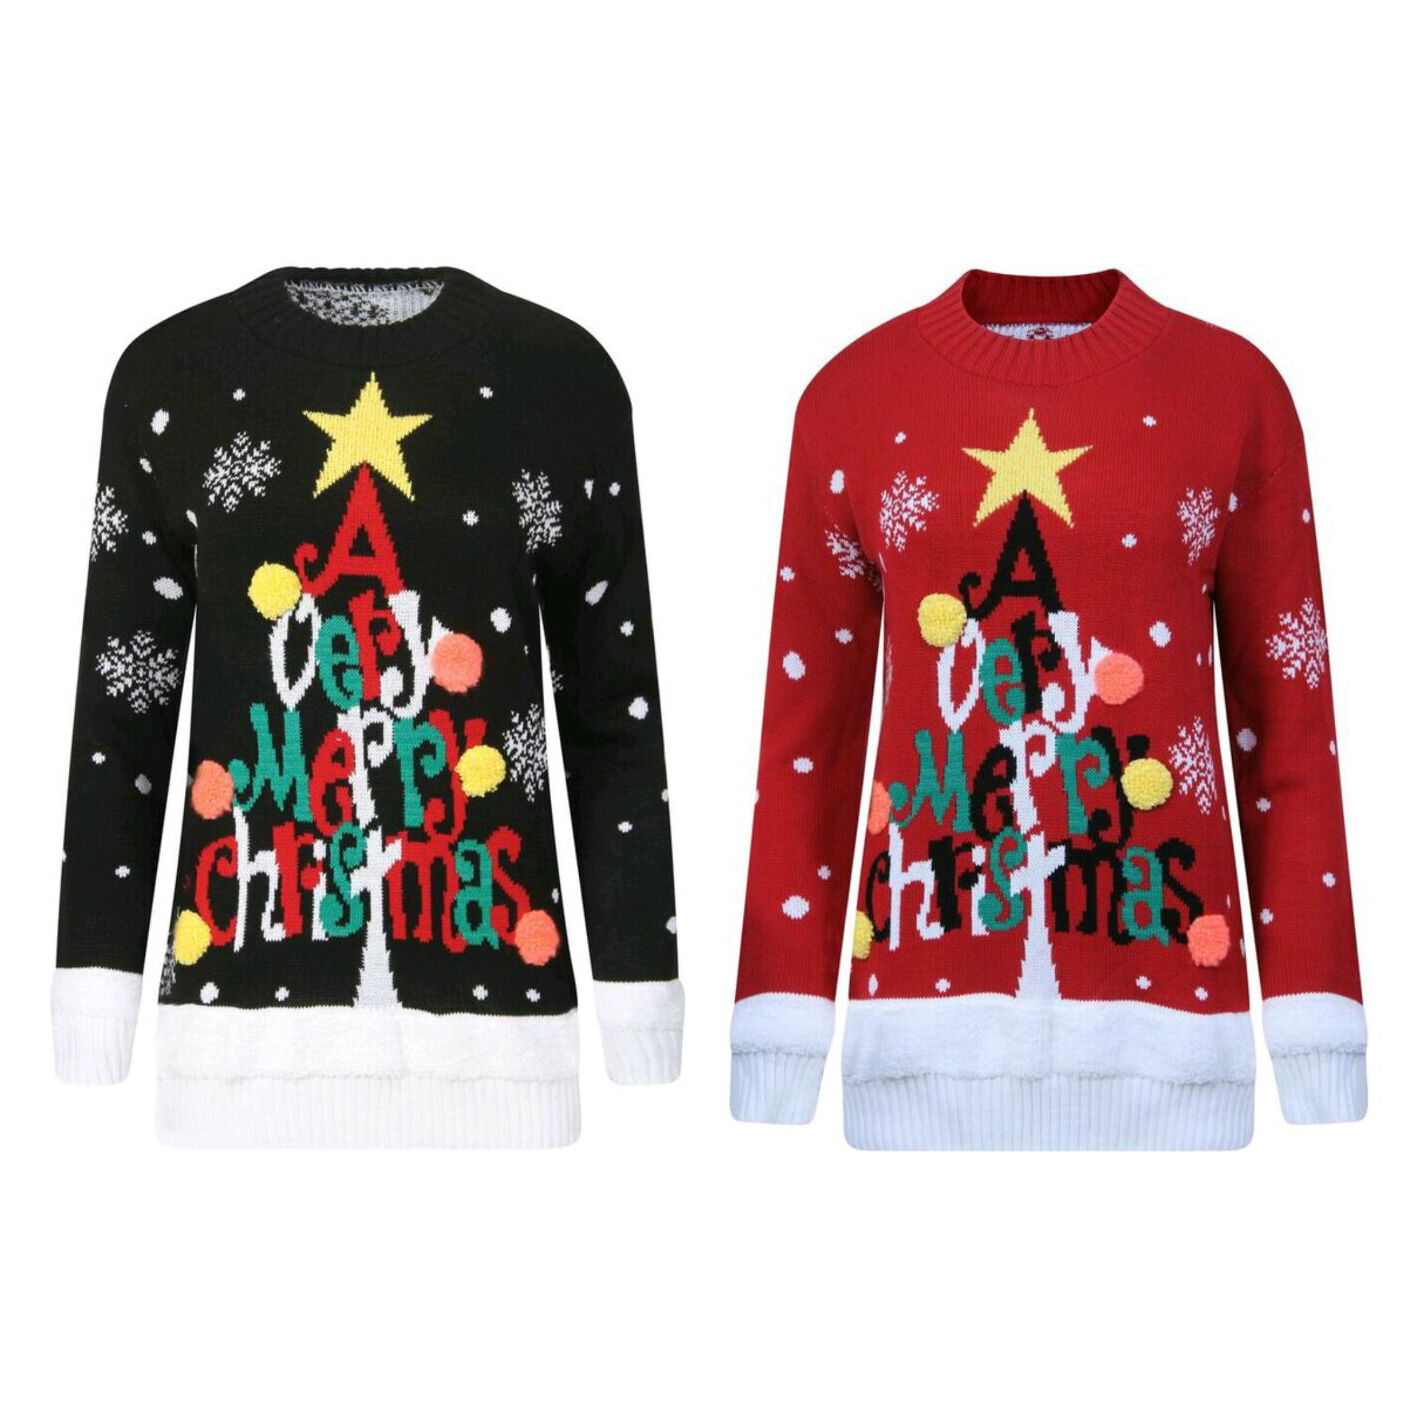 Christmas Novelty Jumper Knitting Patterns : Women ladies knitted very merry christmas d bubbles